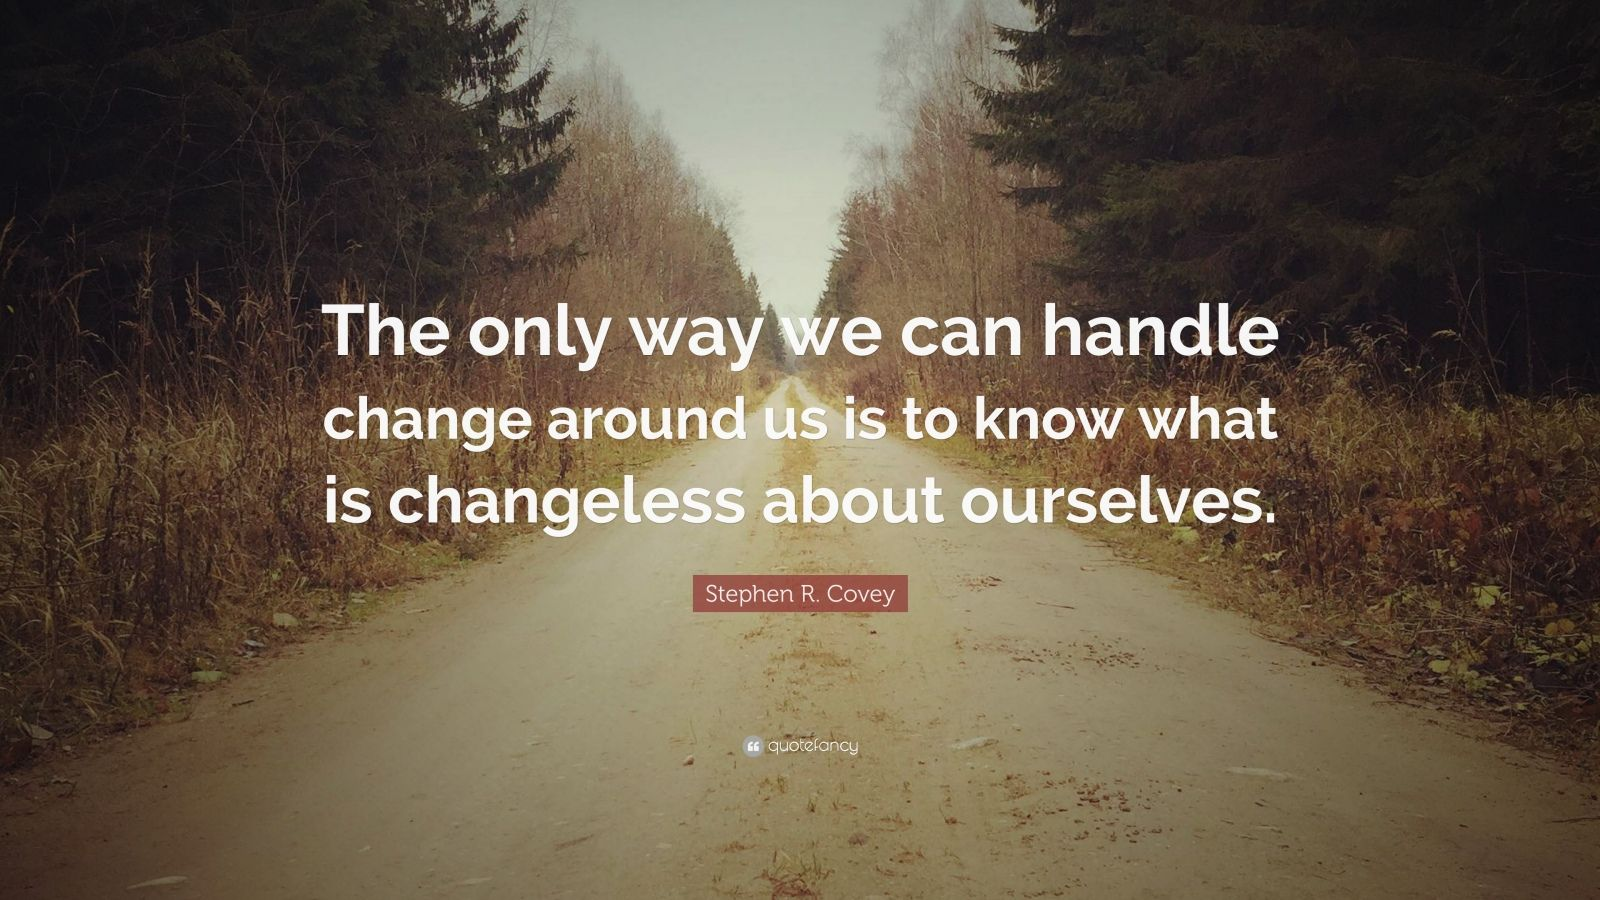 """Stephen R. Covey Quote: """"The only way we can handle change around us is to know what is changeless about ourselves."""""""